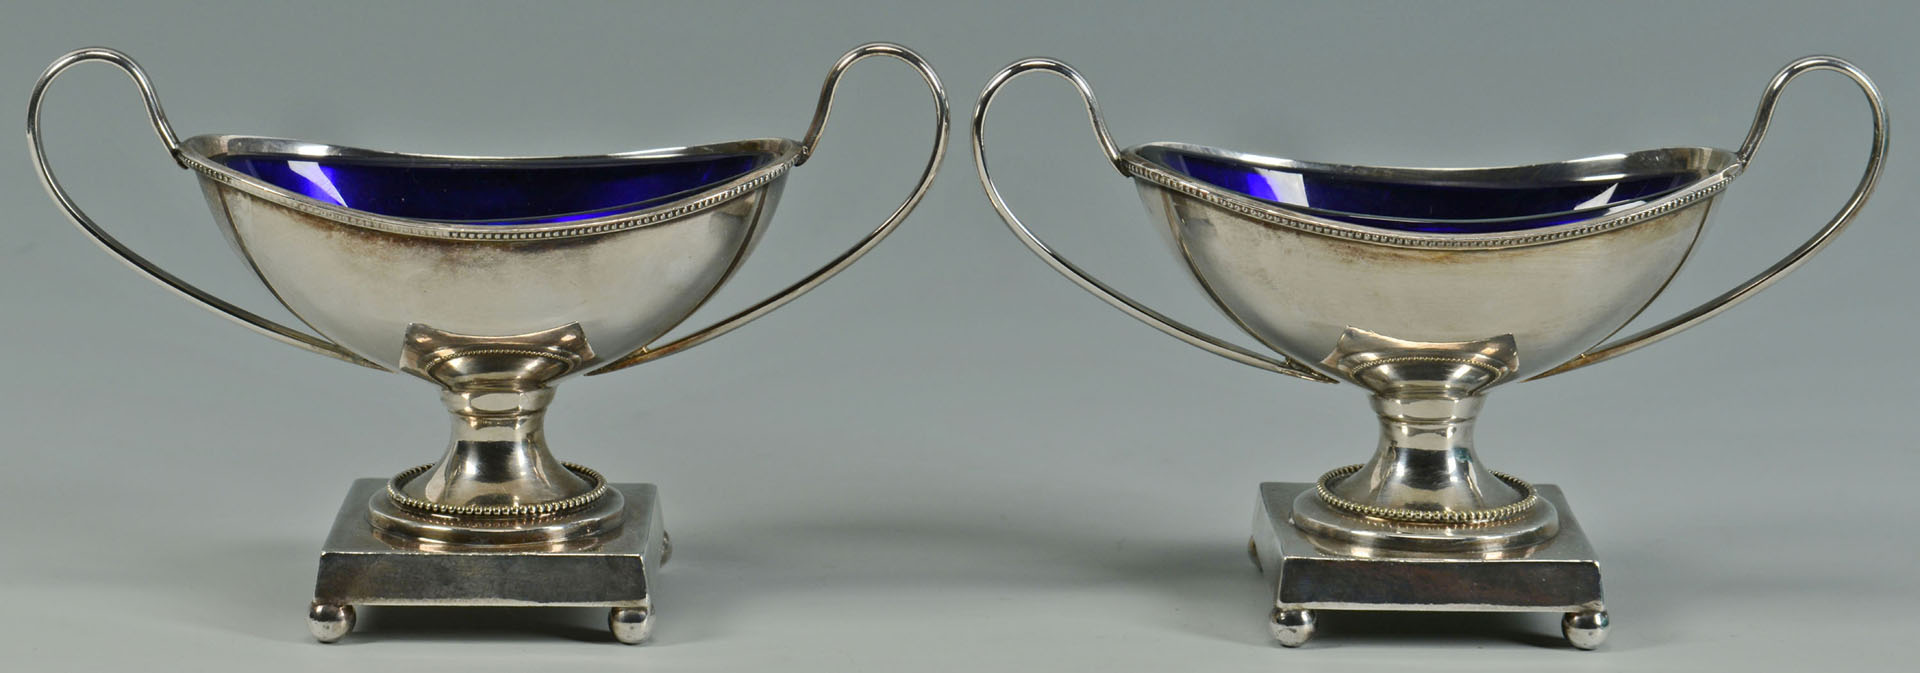 Lot 729: Sterling Flatware and plated salts, 10 pcs.